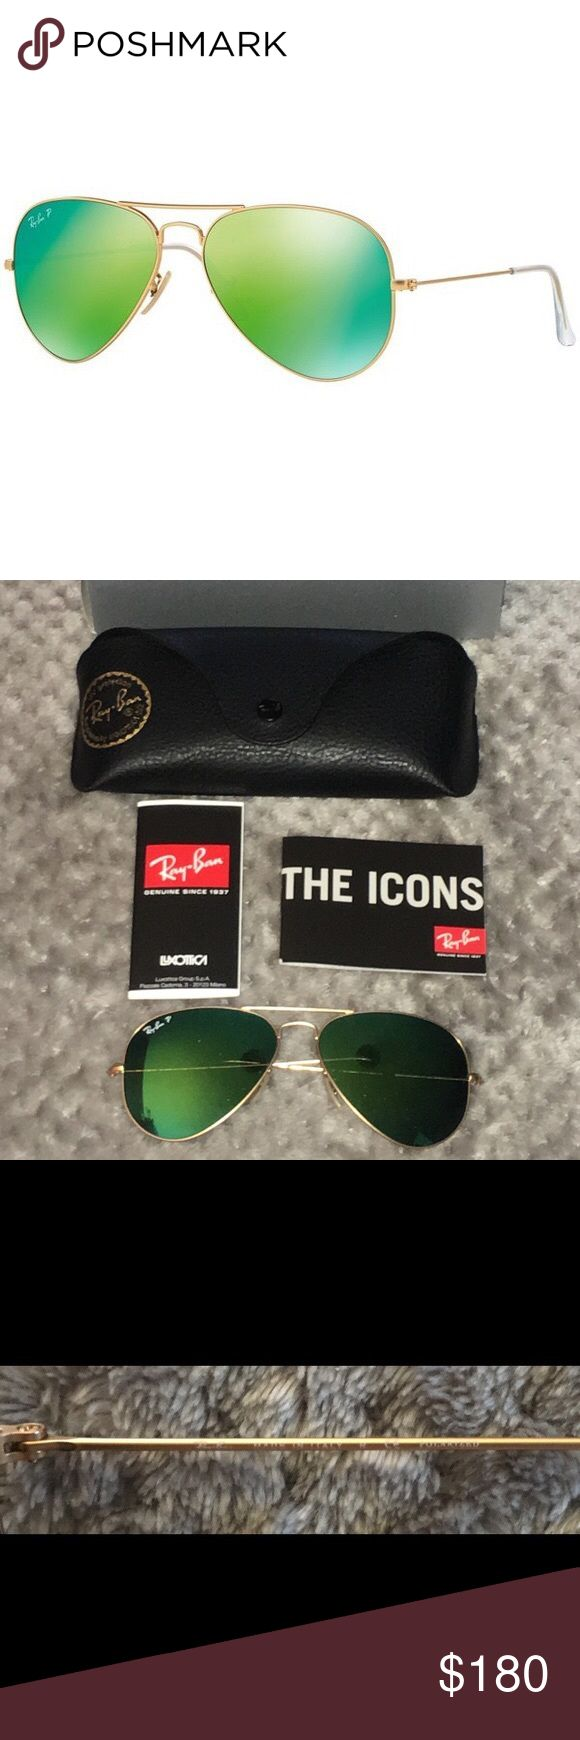 💥POLARIZED💥 Ray Ban Authentic & NEW! Ray Ban model number- RB3025 *POLARIZED* Large Aviator - Color Code- 112/P9 - Eye Size- 58. Comes with box- case - cleaning cloth and authenticity certificate. 100% authentic - NEW - NEVER been worn and ZERO scratches. Ray-Ban Accessories Sunglasses